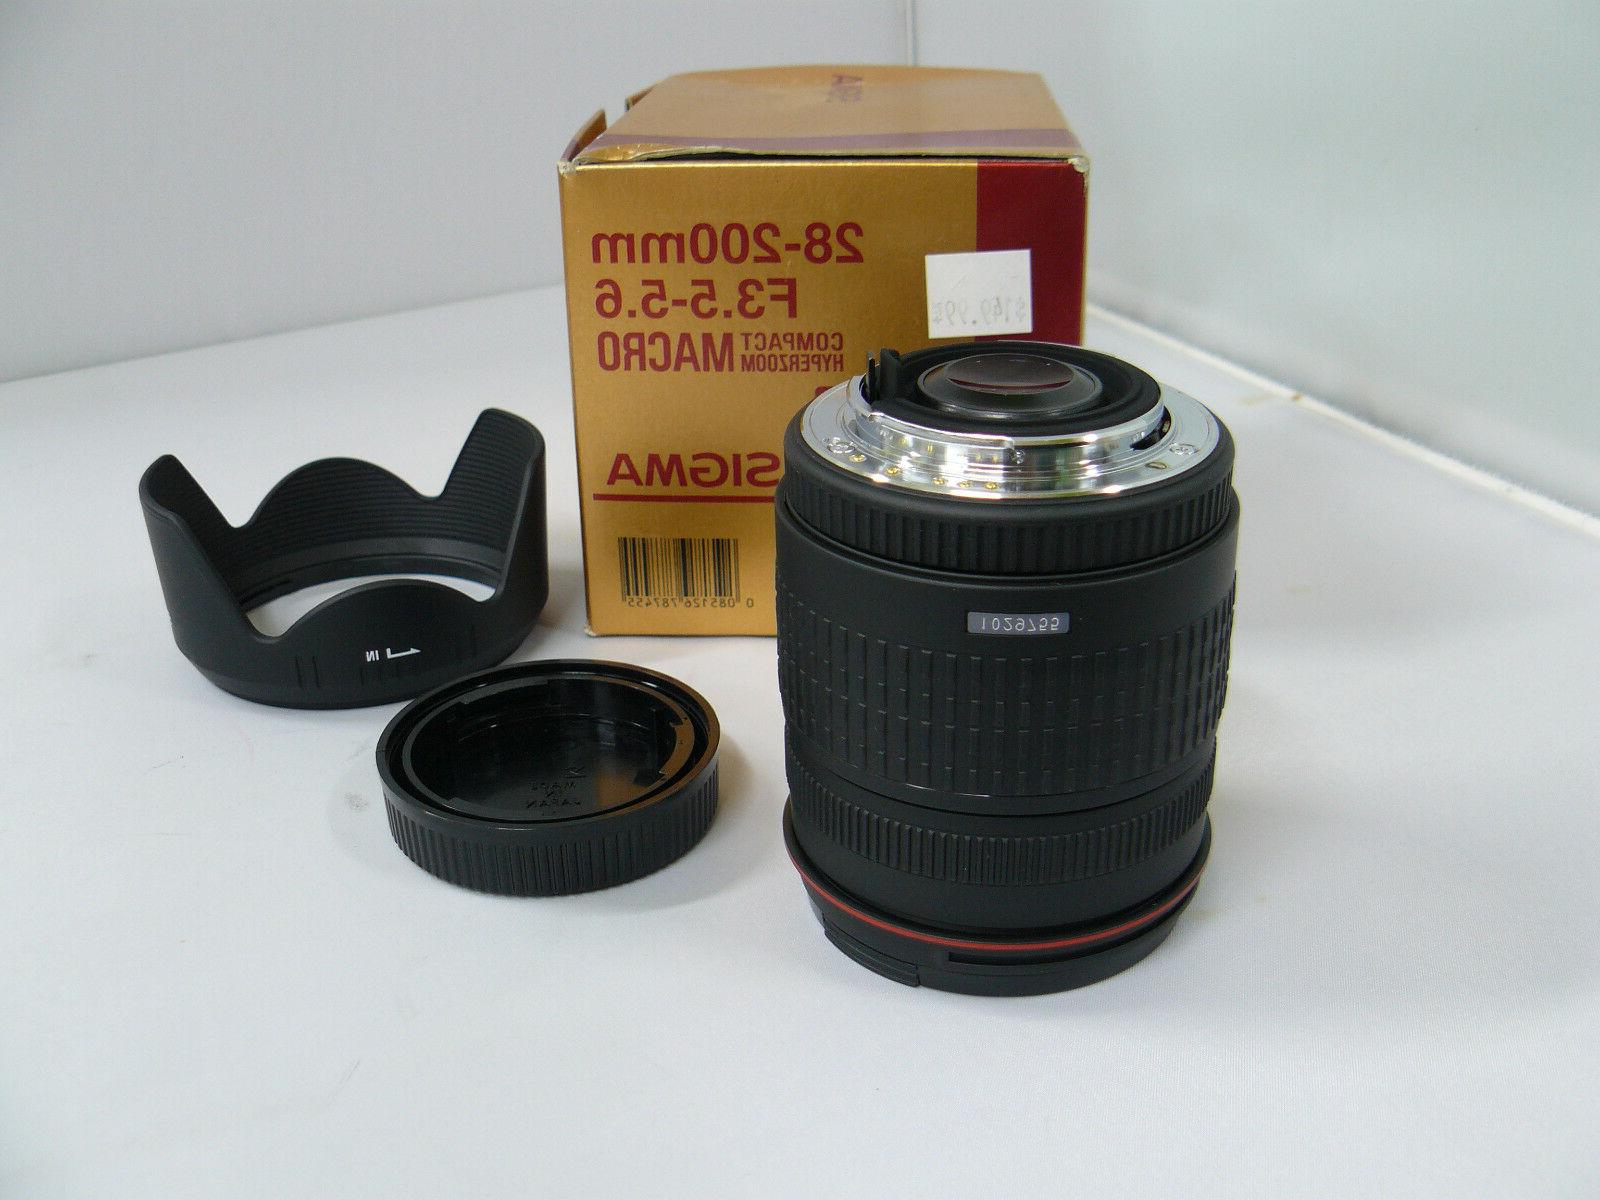 Sigma f3.5-5.6 Hyperzoom Macro for Pentax 35mm